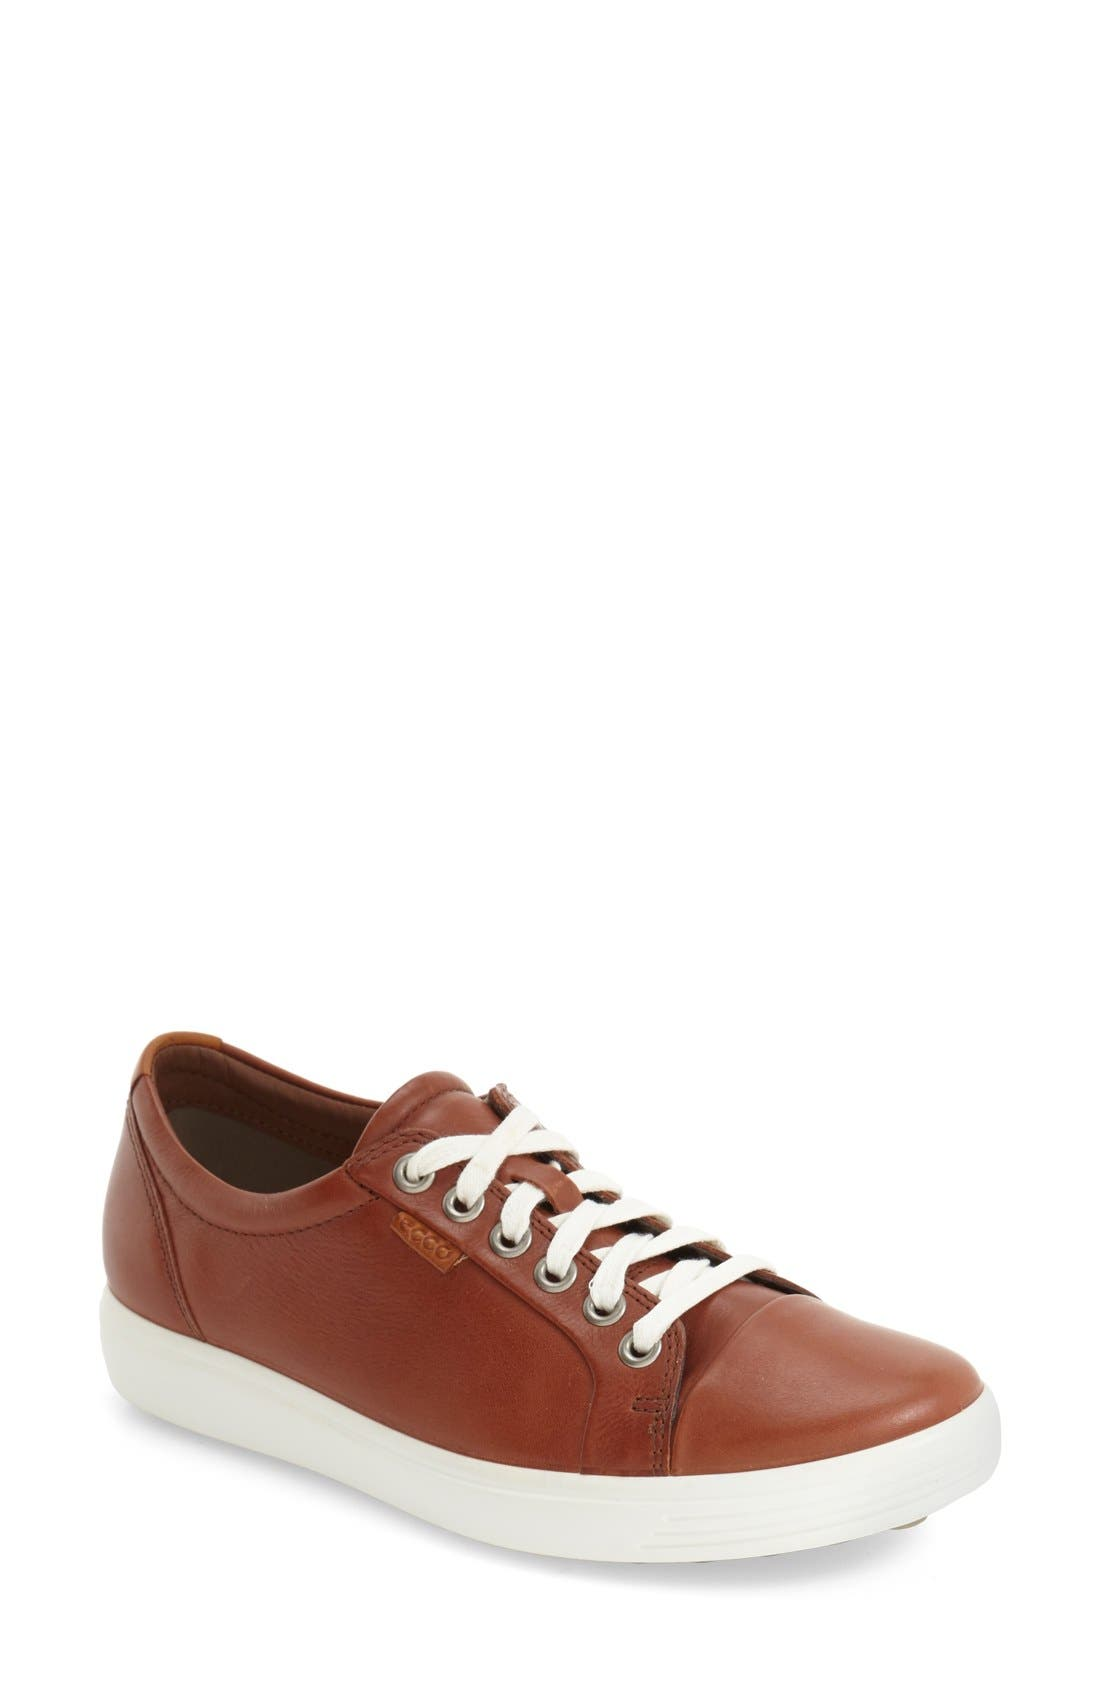 Soft 7 Sneaker,                         Main,                         color, Mahogany Leather